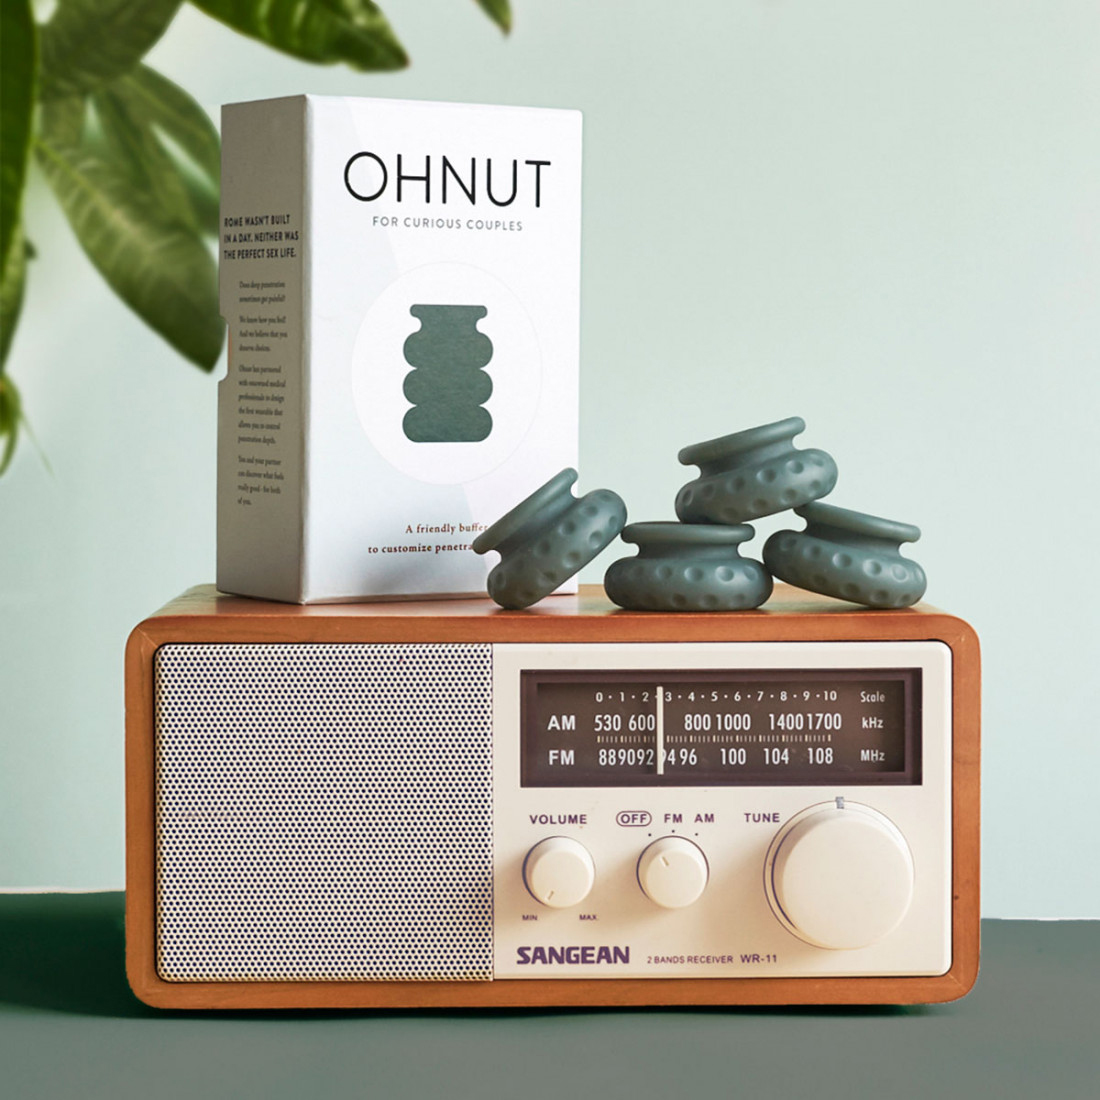 Ohnut Intimate Wearable Penetration Buffer - Lifestyle